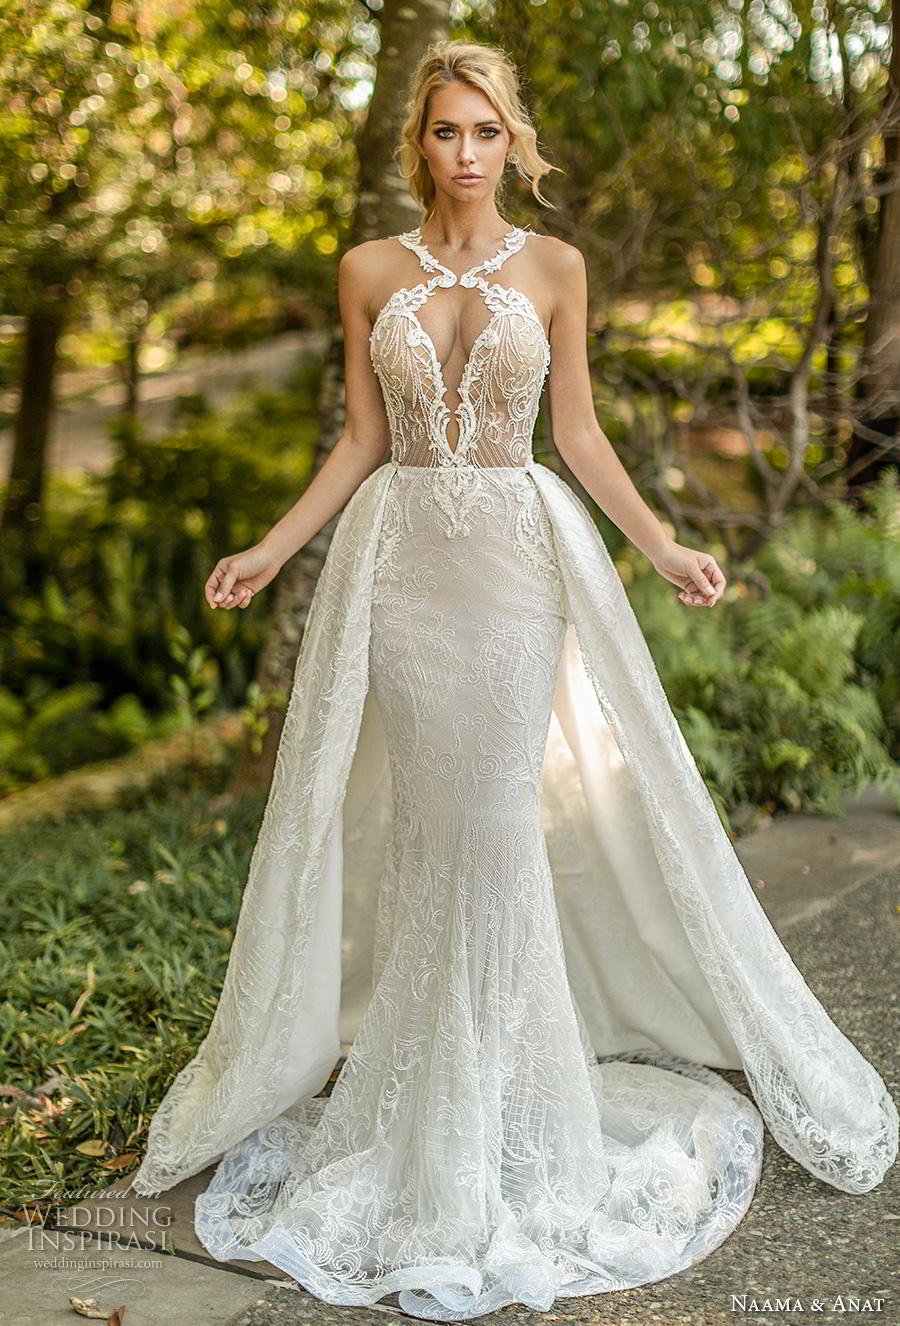 naama anat fall 2019 couture bridal sleeveless halter neck keyhole bodice full embellishment elegant sexy fit and flare wedding dress a line overskirt low open back chapel train (6) mv